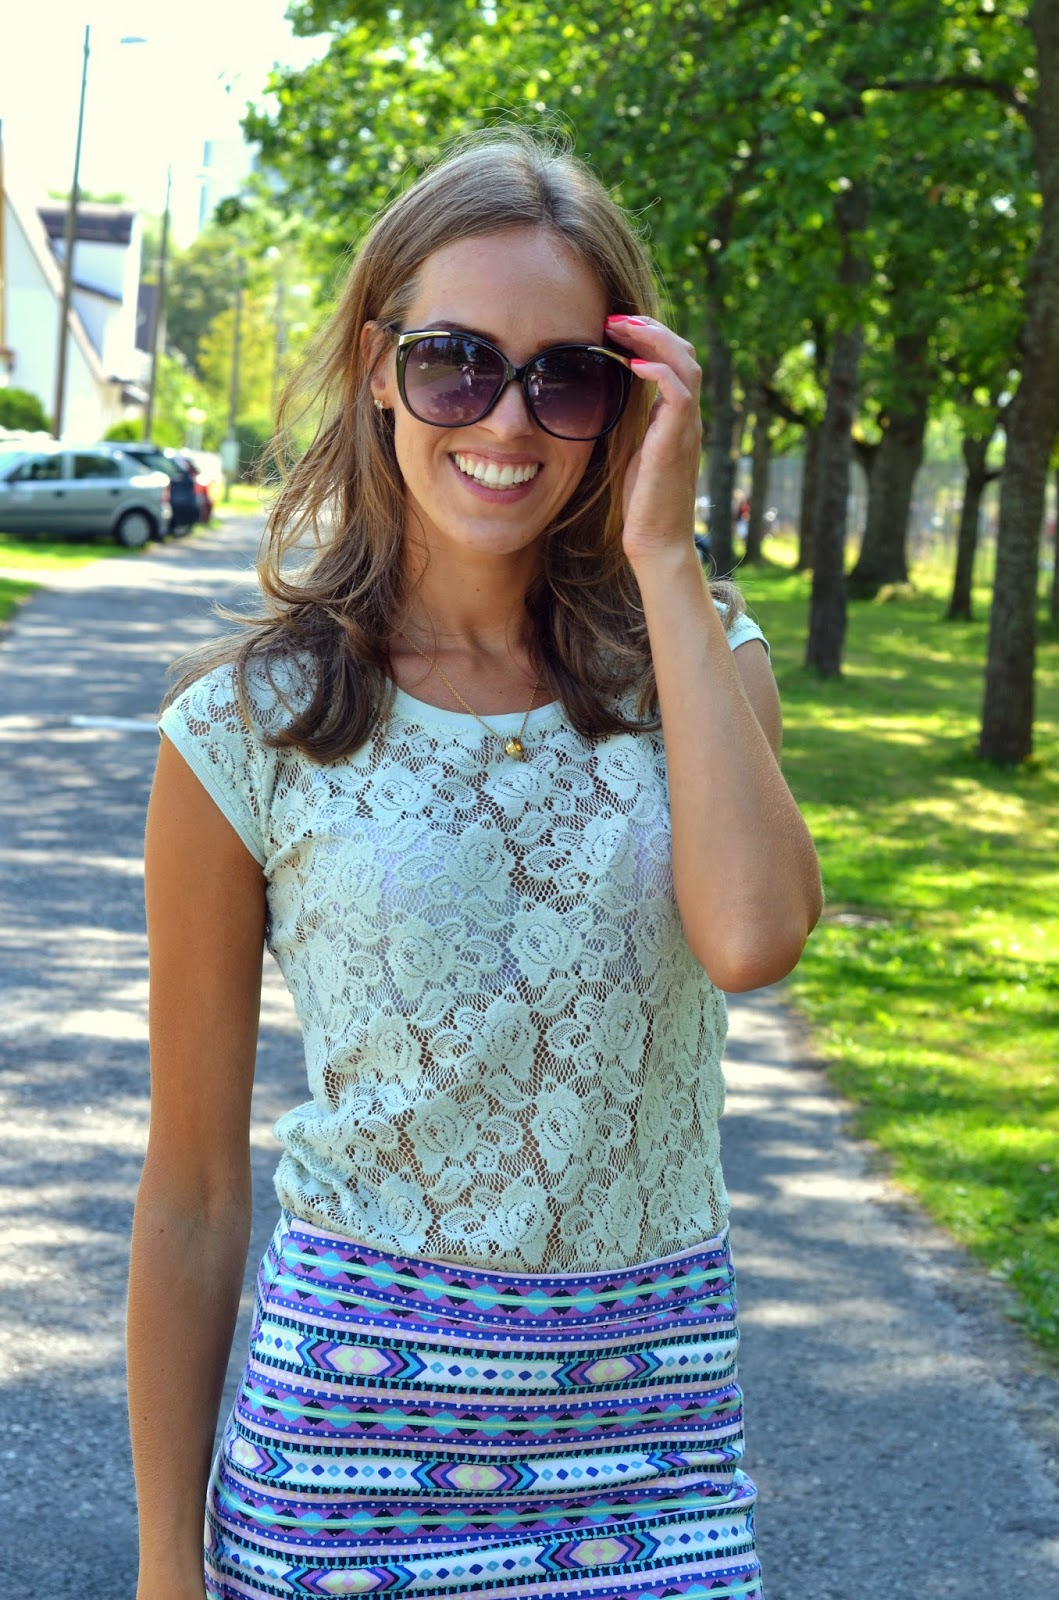 hm skirt zara shirt aldo sunglasses outfit